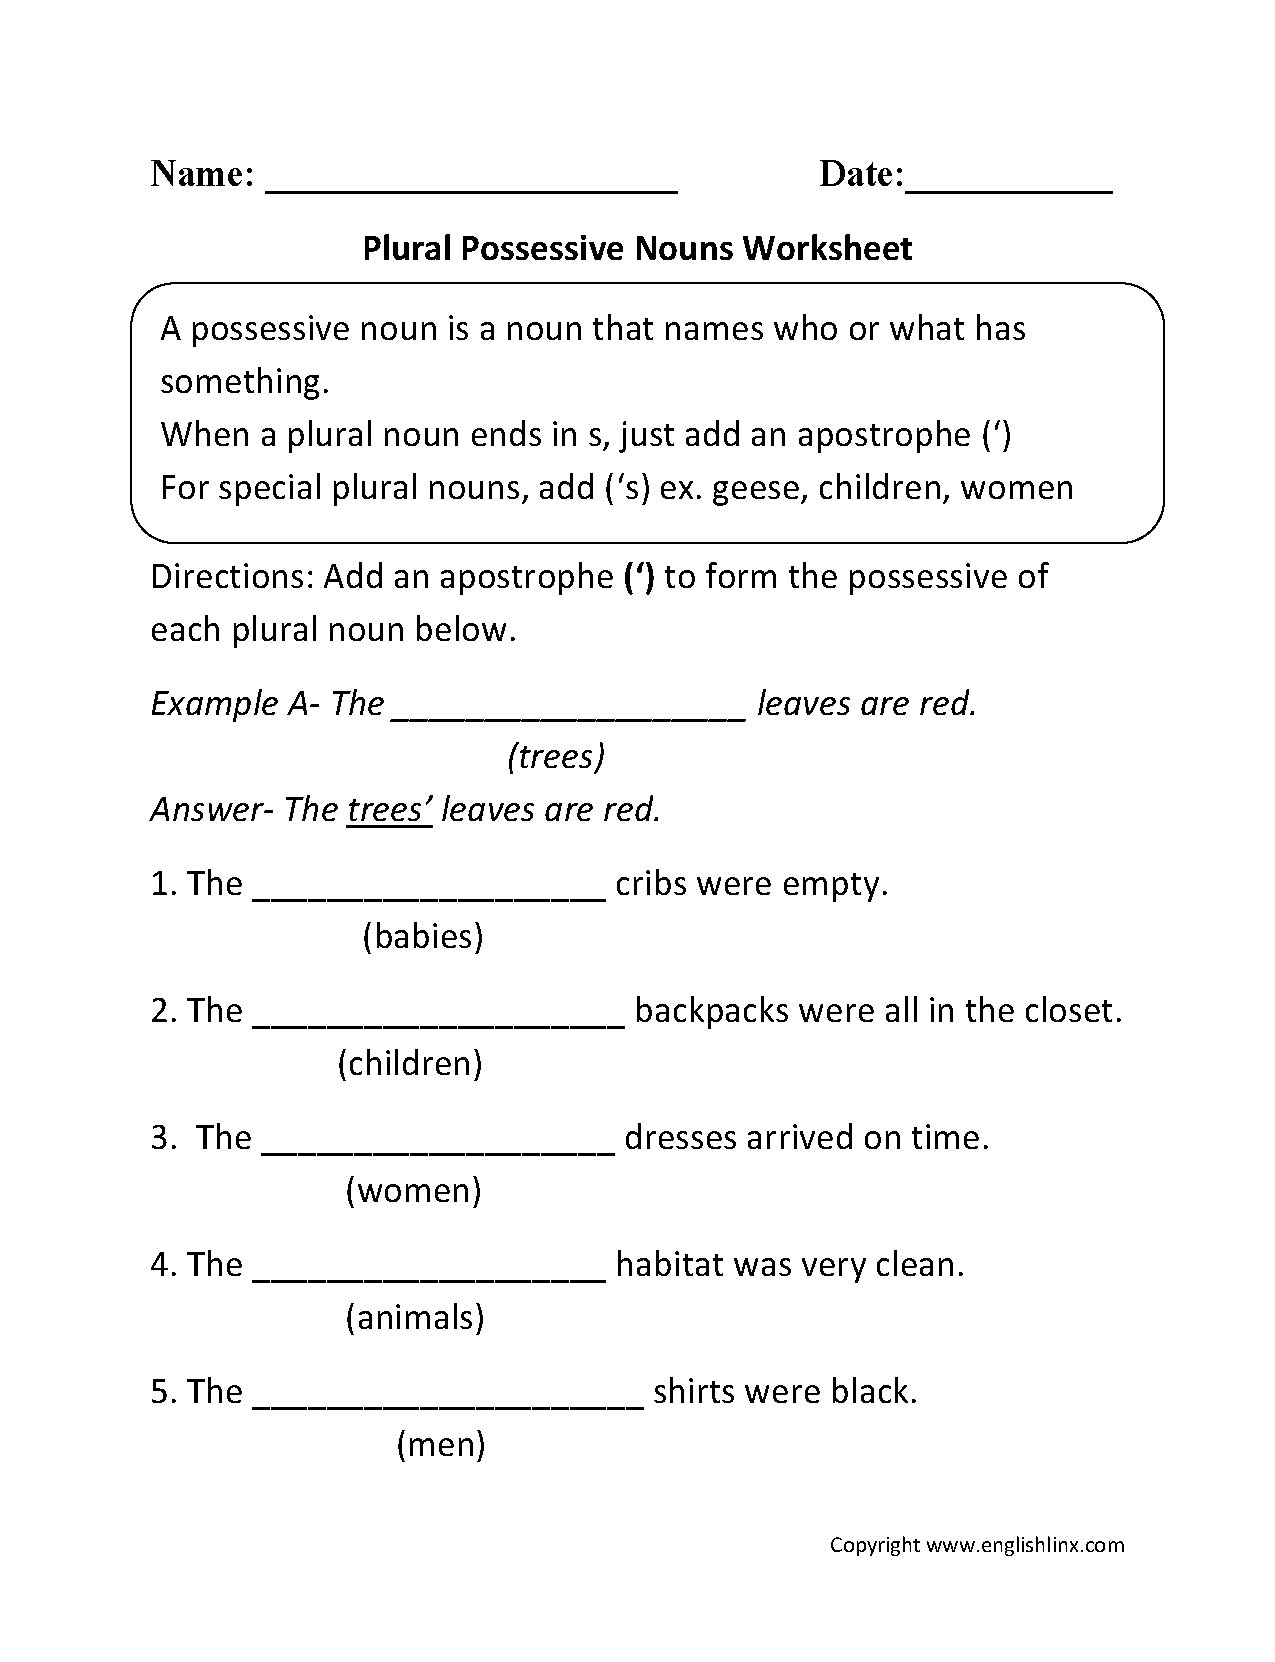 Aldiablosus  Splendid Nouns Worksheets  Possessive Nouns Worksheets With Extraordinary Possessive Nouns Worksheets With Astounding Match Worksheet Also Writing Worksheets Middle School In Addition F Worksheet And Main Idea Supporting Details Worksheets As Well As Measuring Centimeters Worksheet Additionally Free Printable Rhyming Worksheets For Kindergarten From Englishlinxcom With Aldiablosus  Extraordinary Nouns Worksheets  Possessive Nouns Worksheets With Astounding Possessive Nouns Worksheets And Splendid Match Worksheet Also Writing Worksheets Middle School In Addition F Worksheet From Englishlinxcom